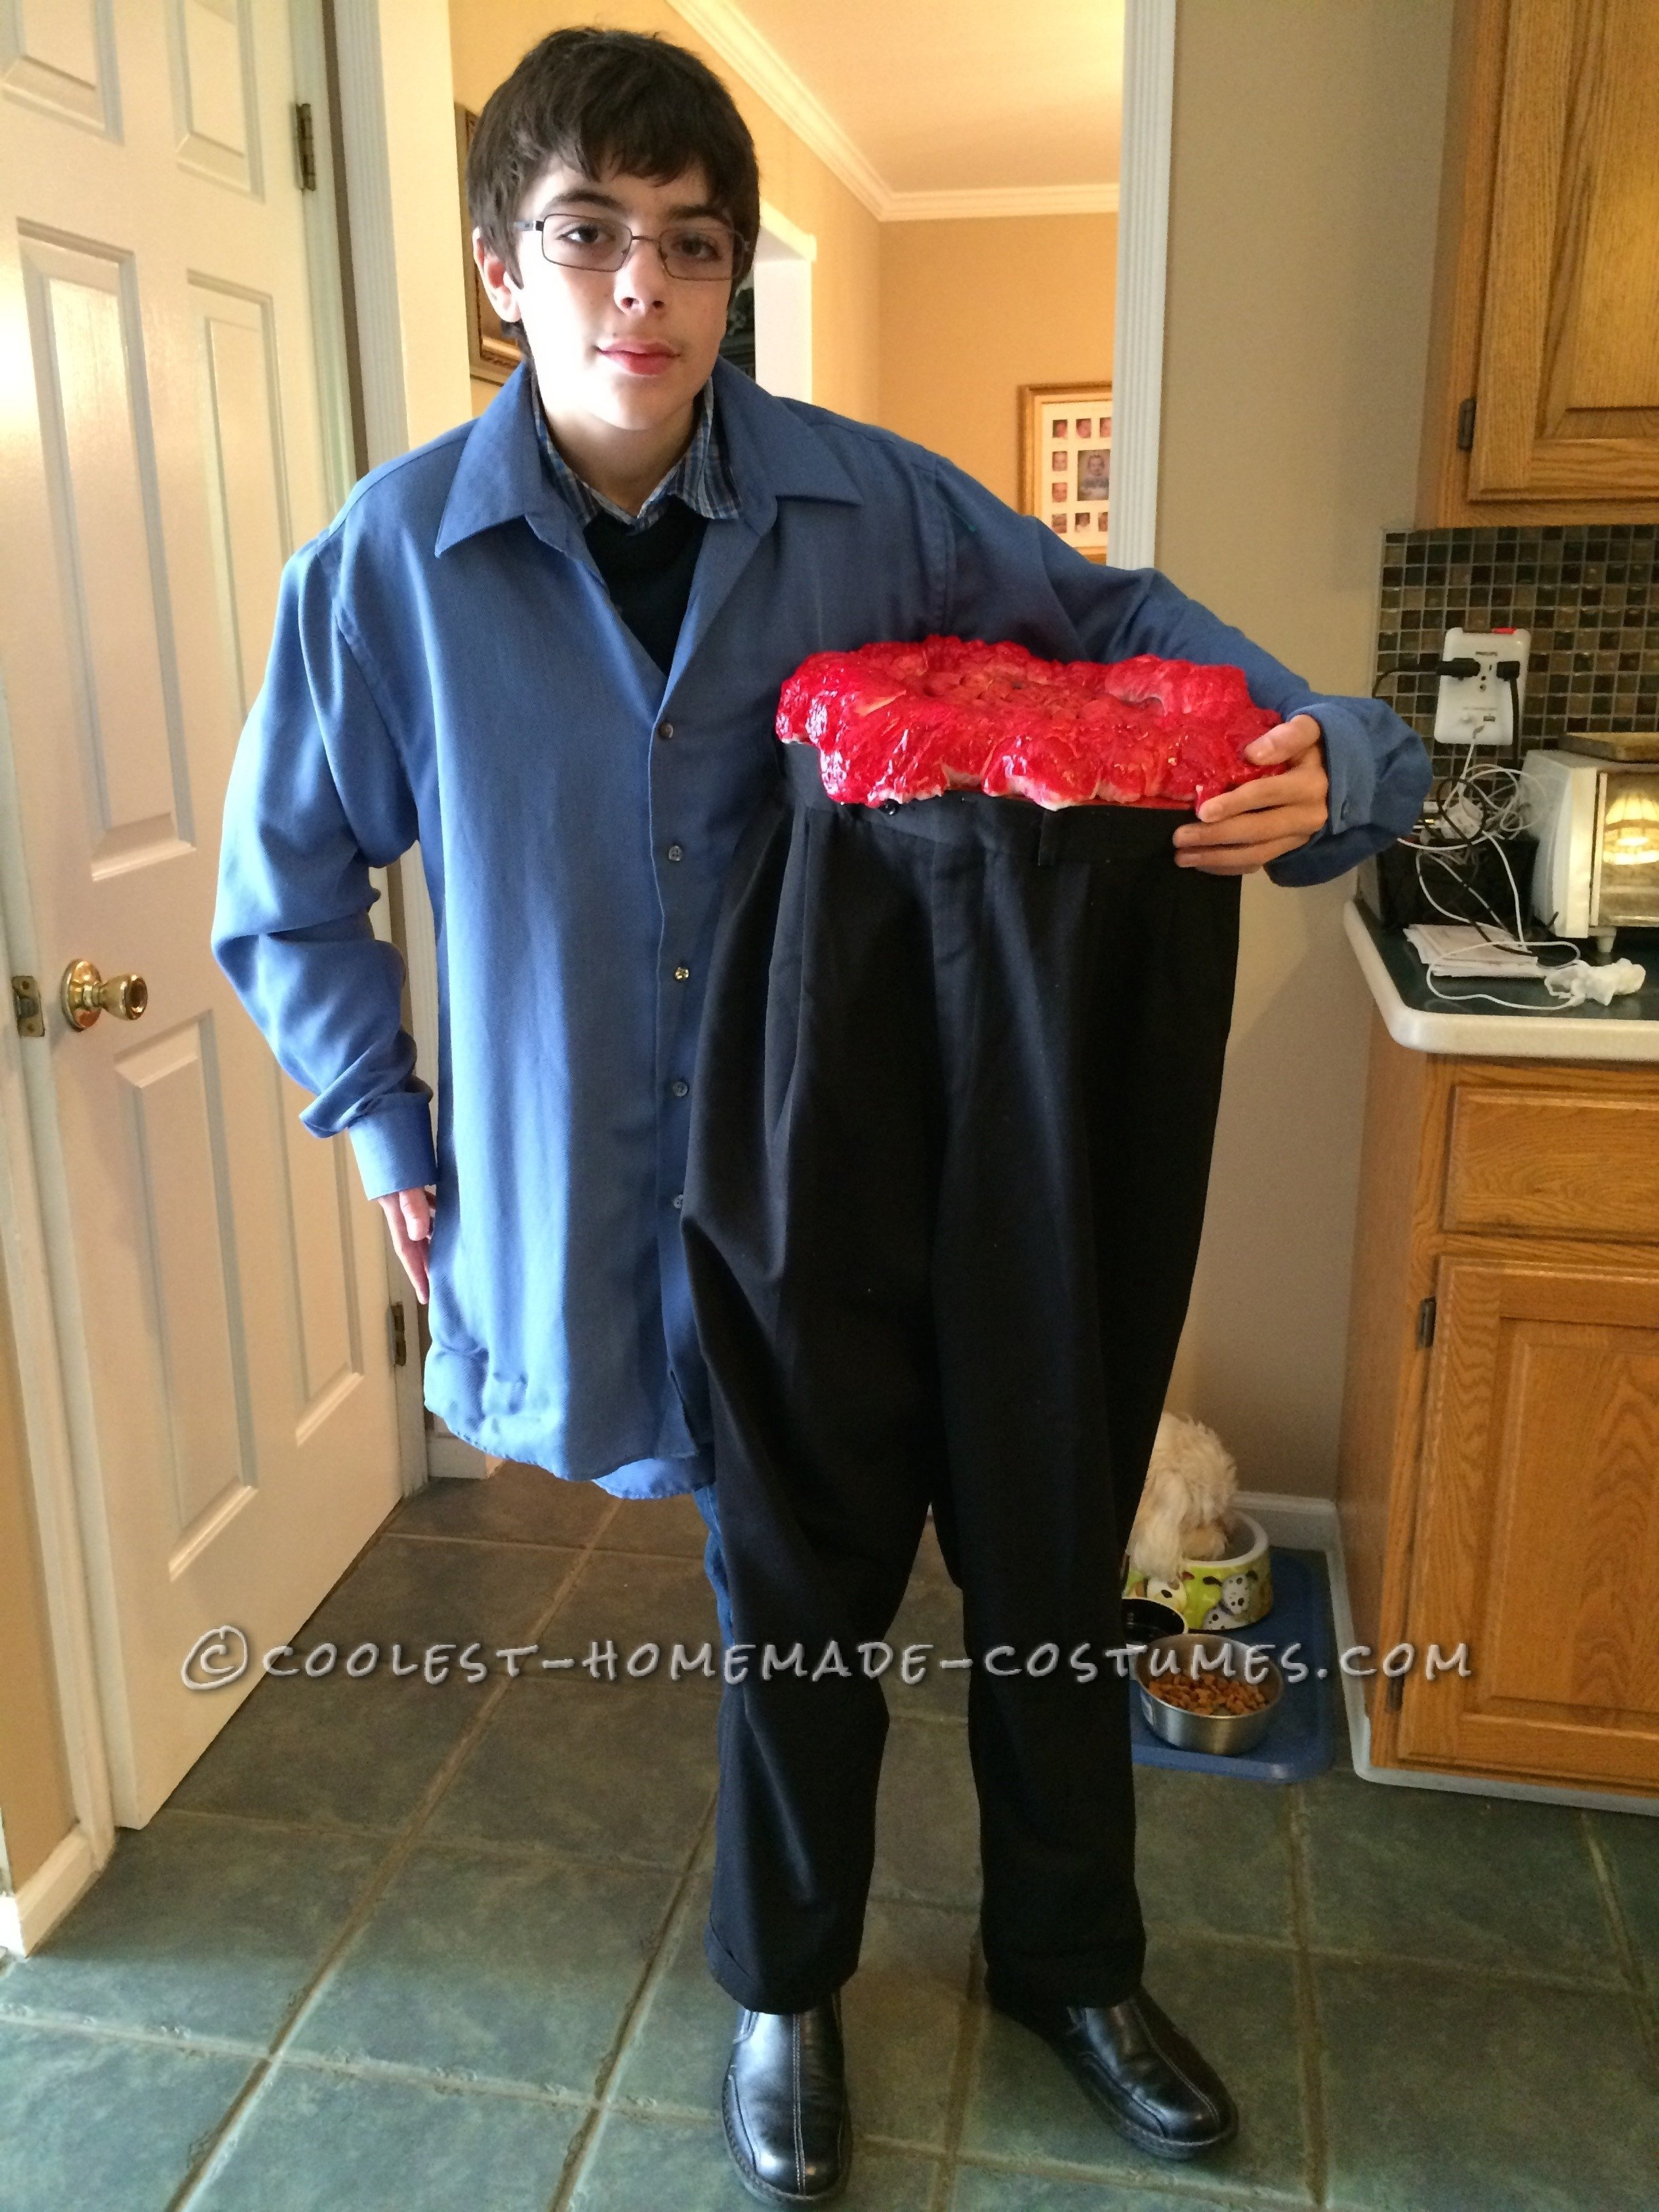 10 Attractive Halloween Costume Ideas For Big Men cool illusion costume half the man i used to be halloween 2 2021